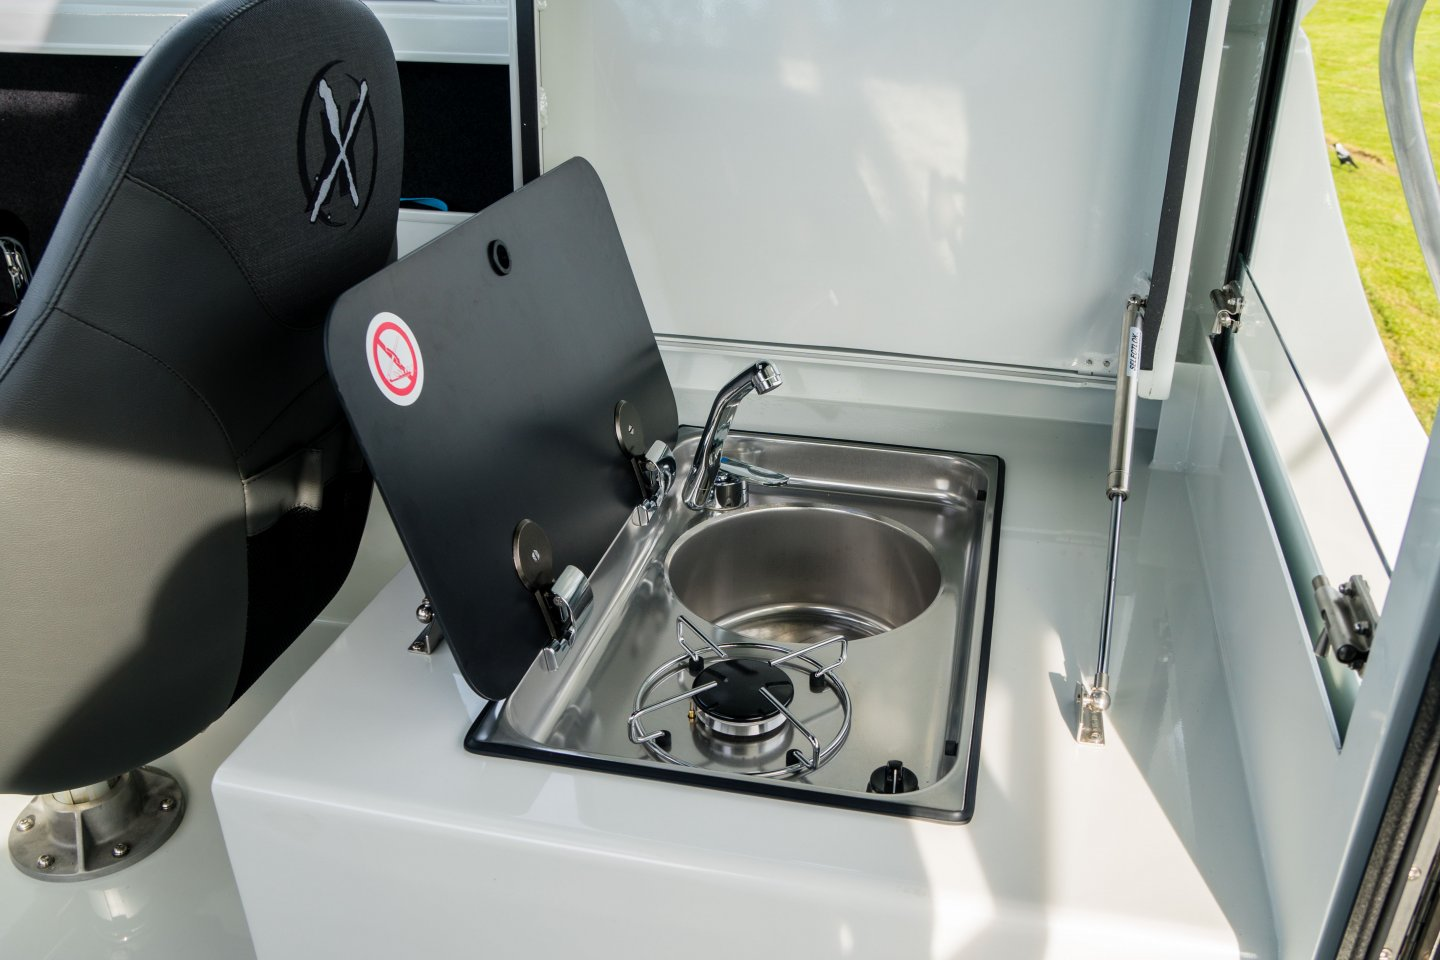 cooker / sink combo in boat